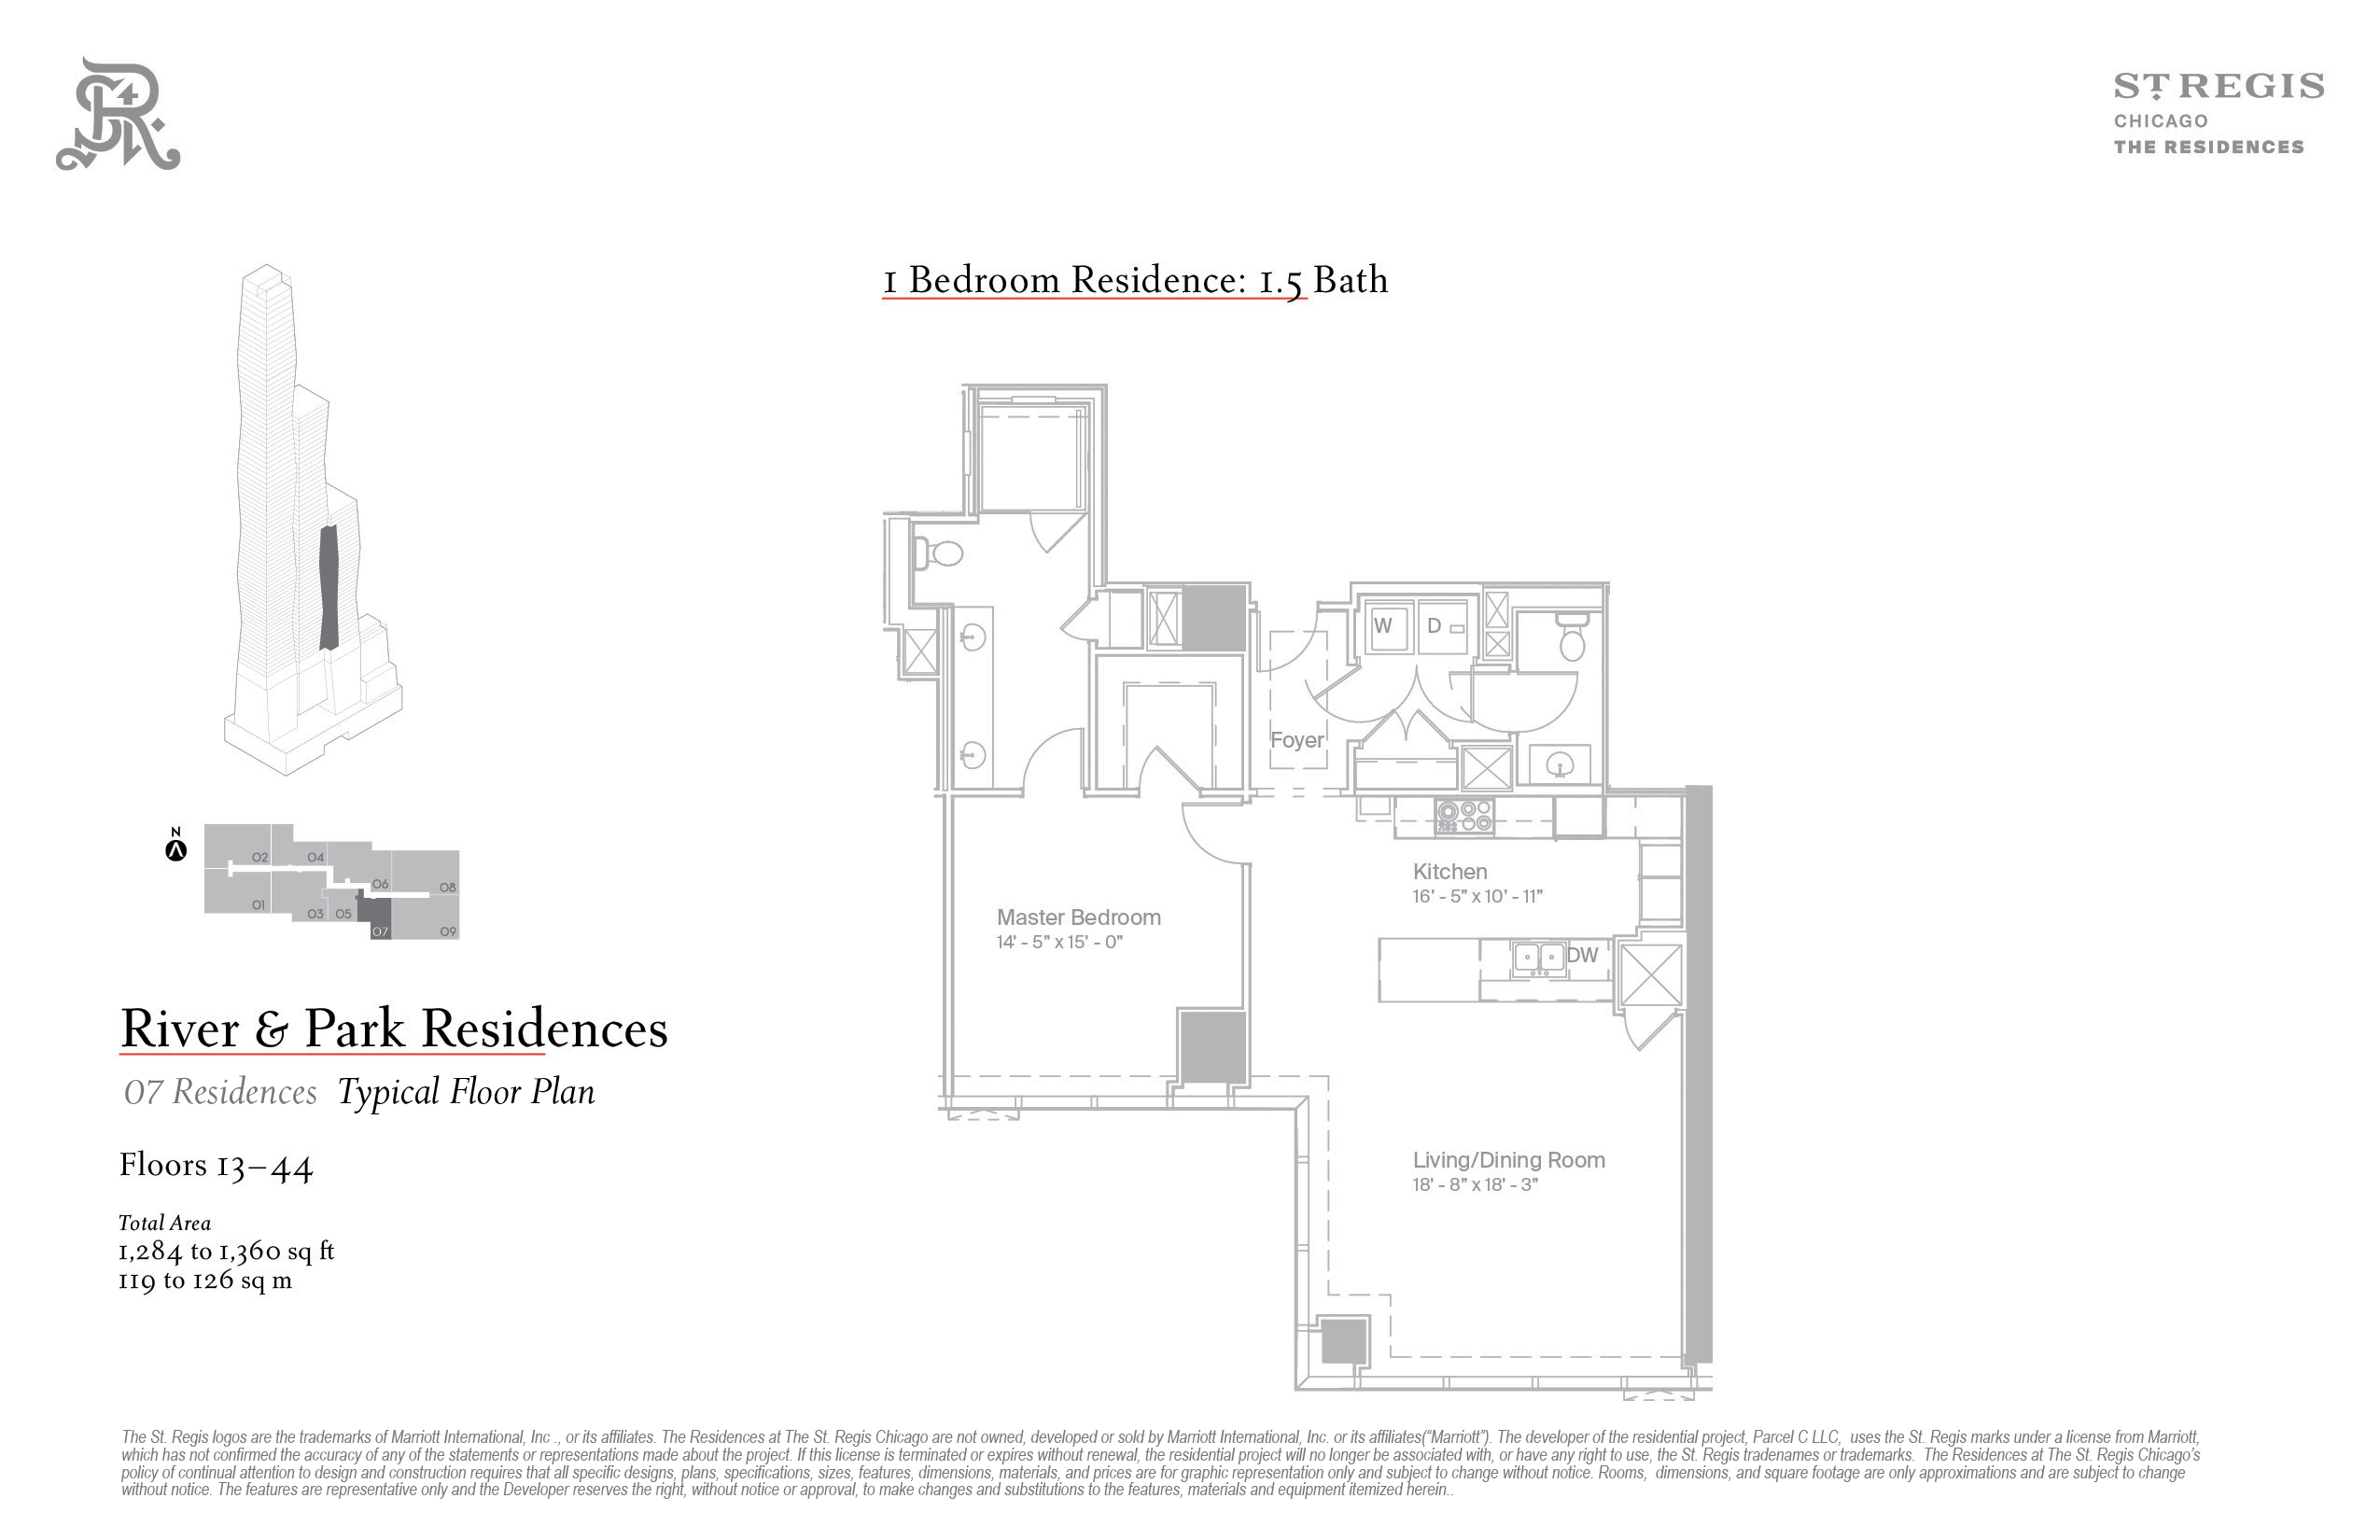 Plan 7 at the St Regis Chicago one bedroom condominium